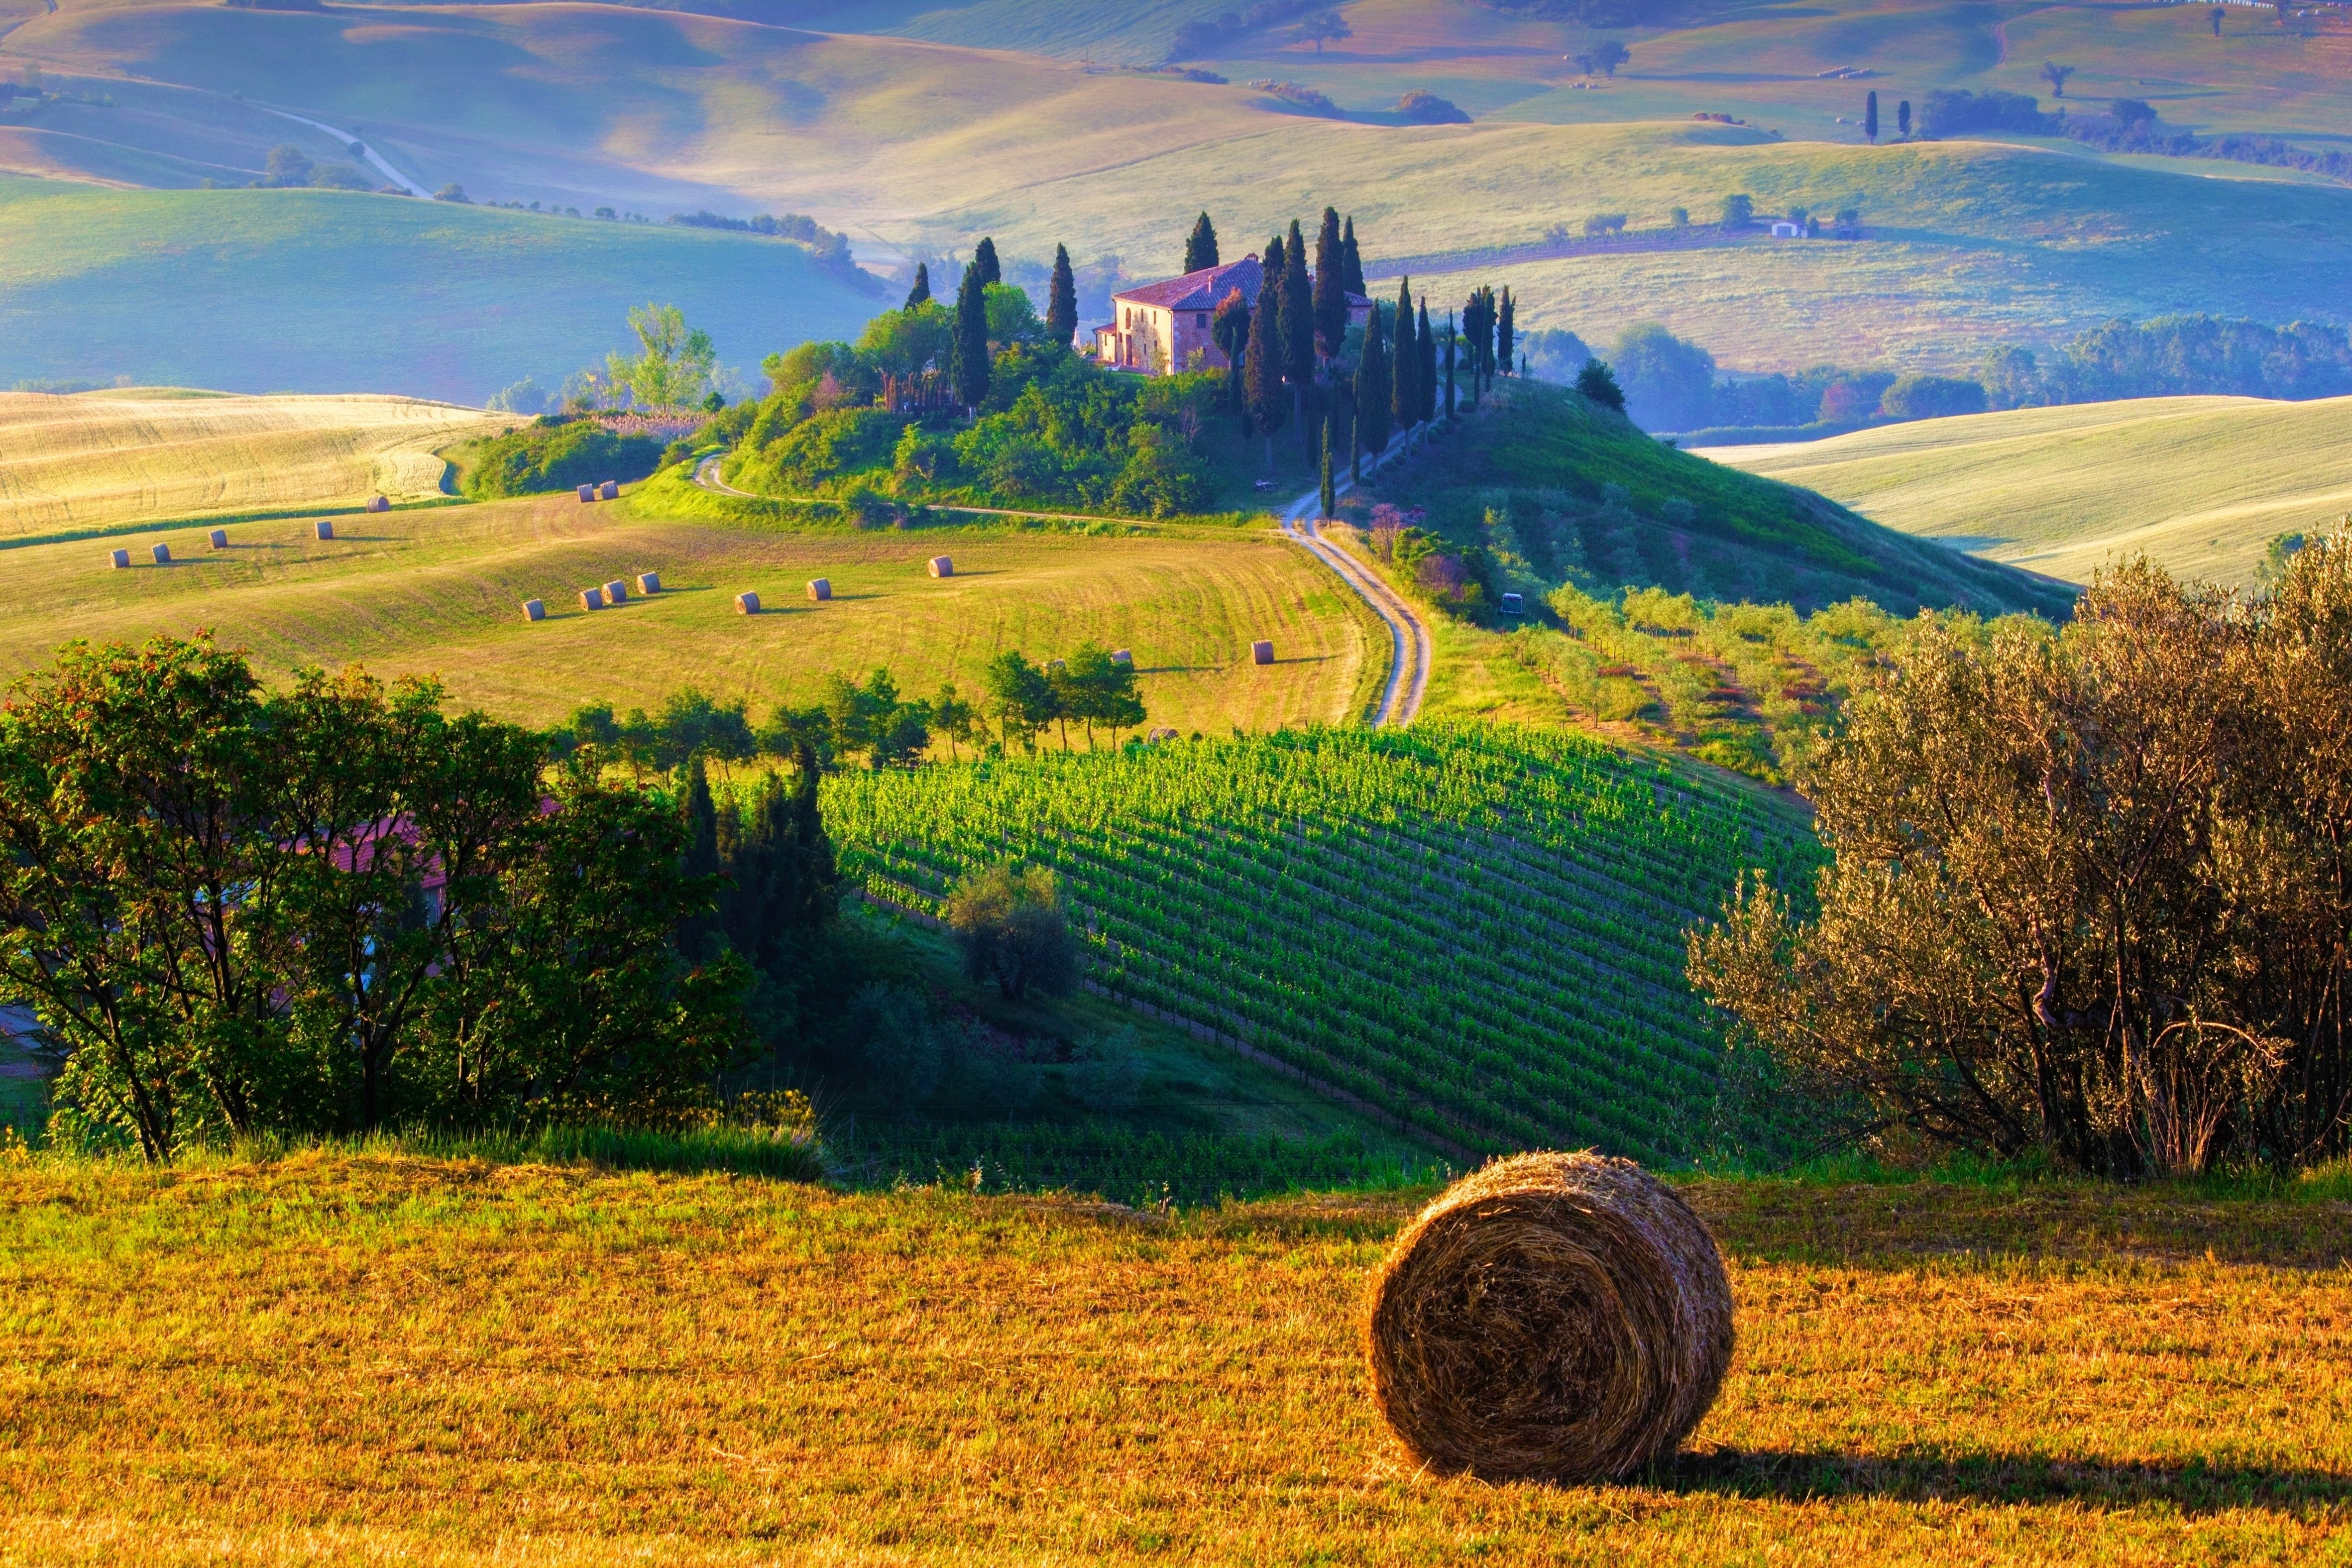 Tuscany Wallpapers - Top Free Tuscany Backgrounds ...